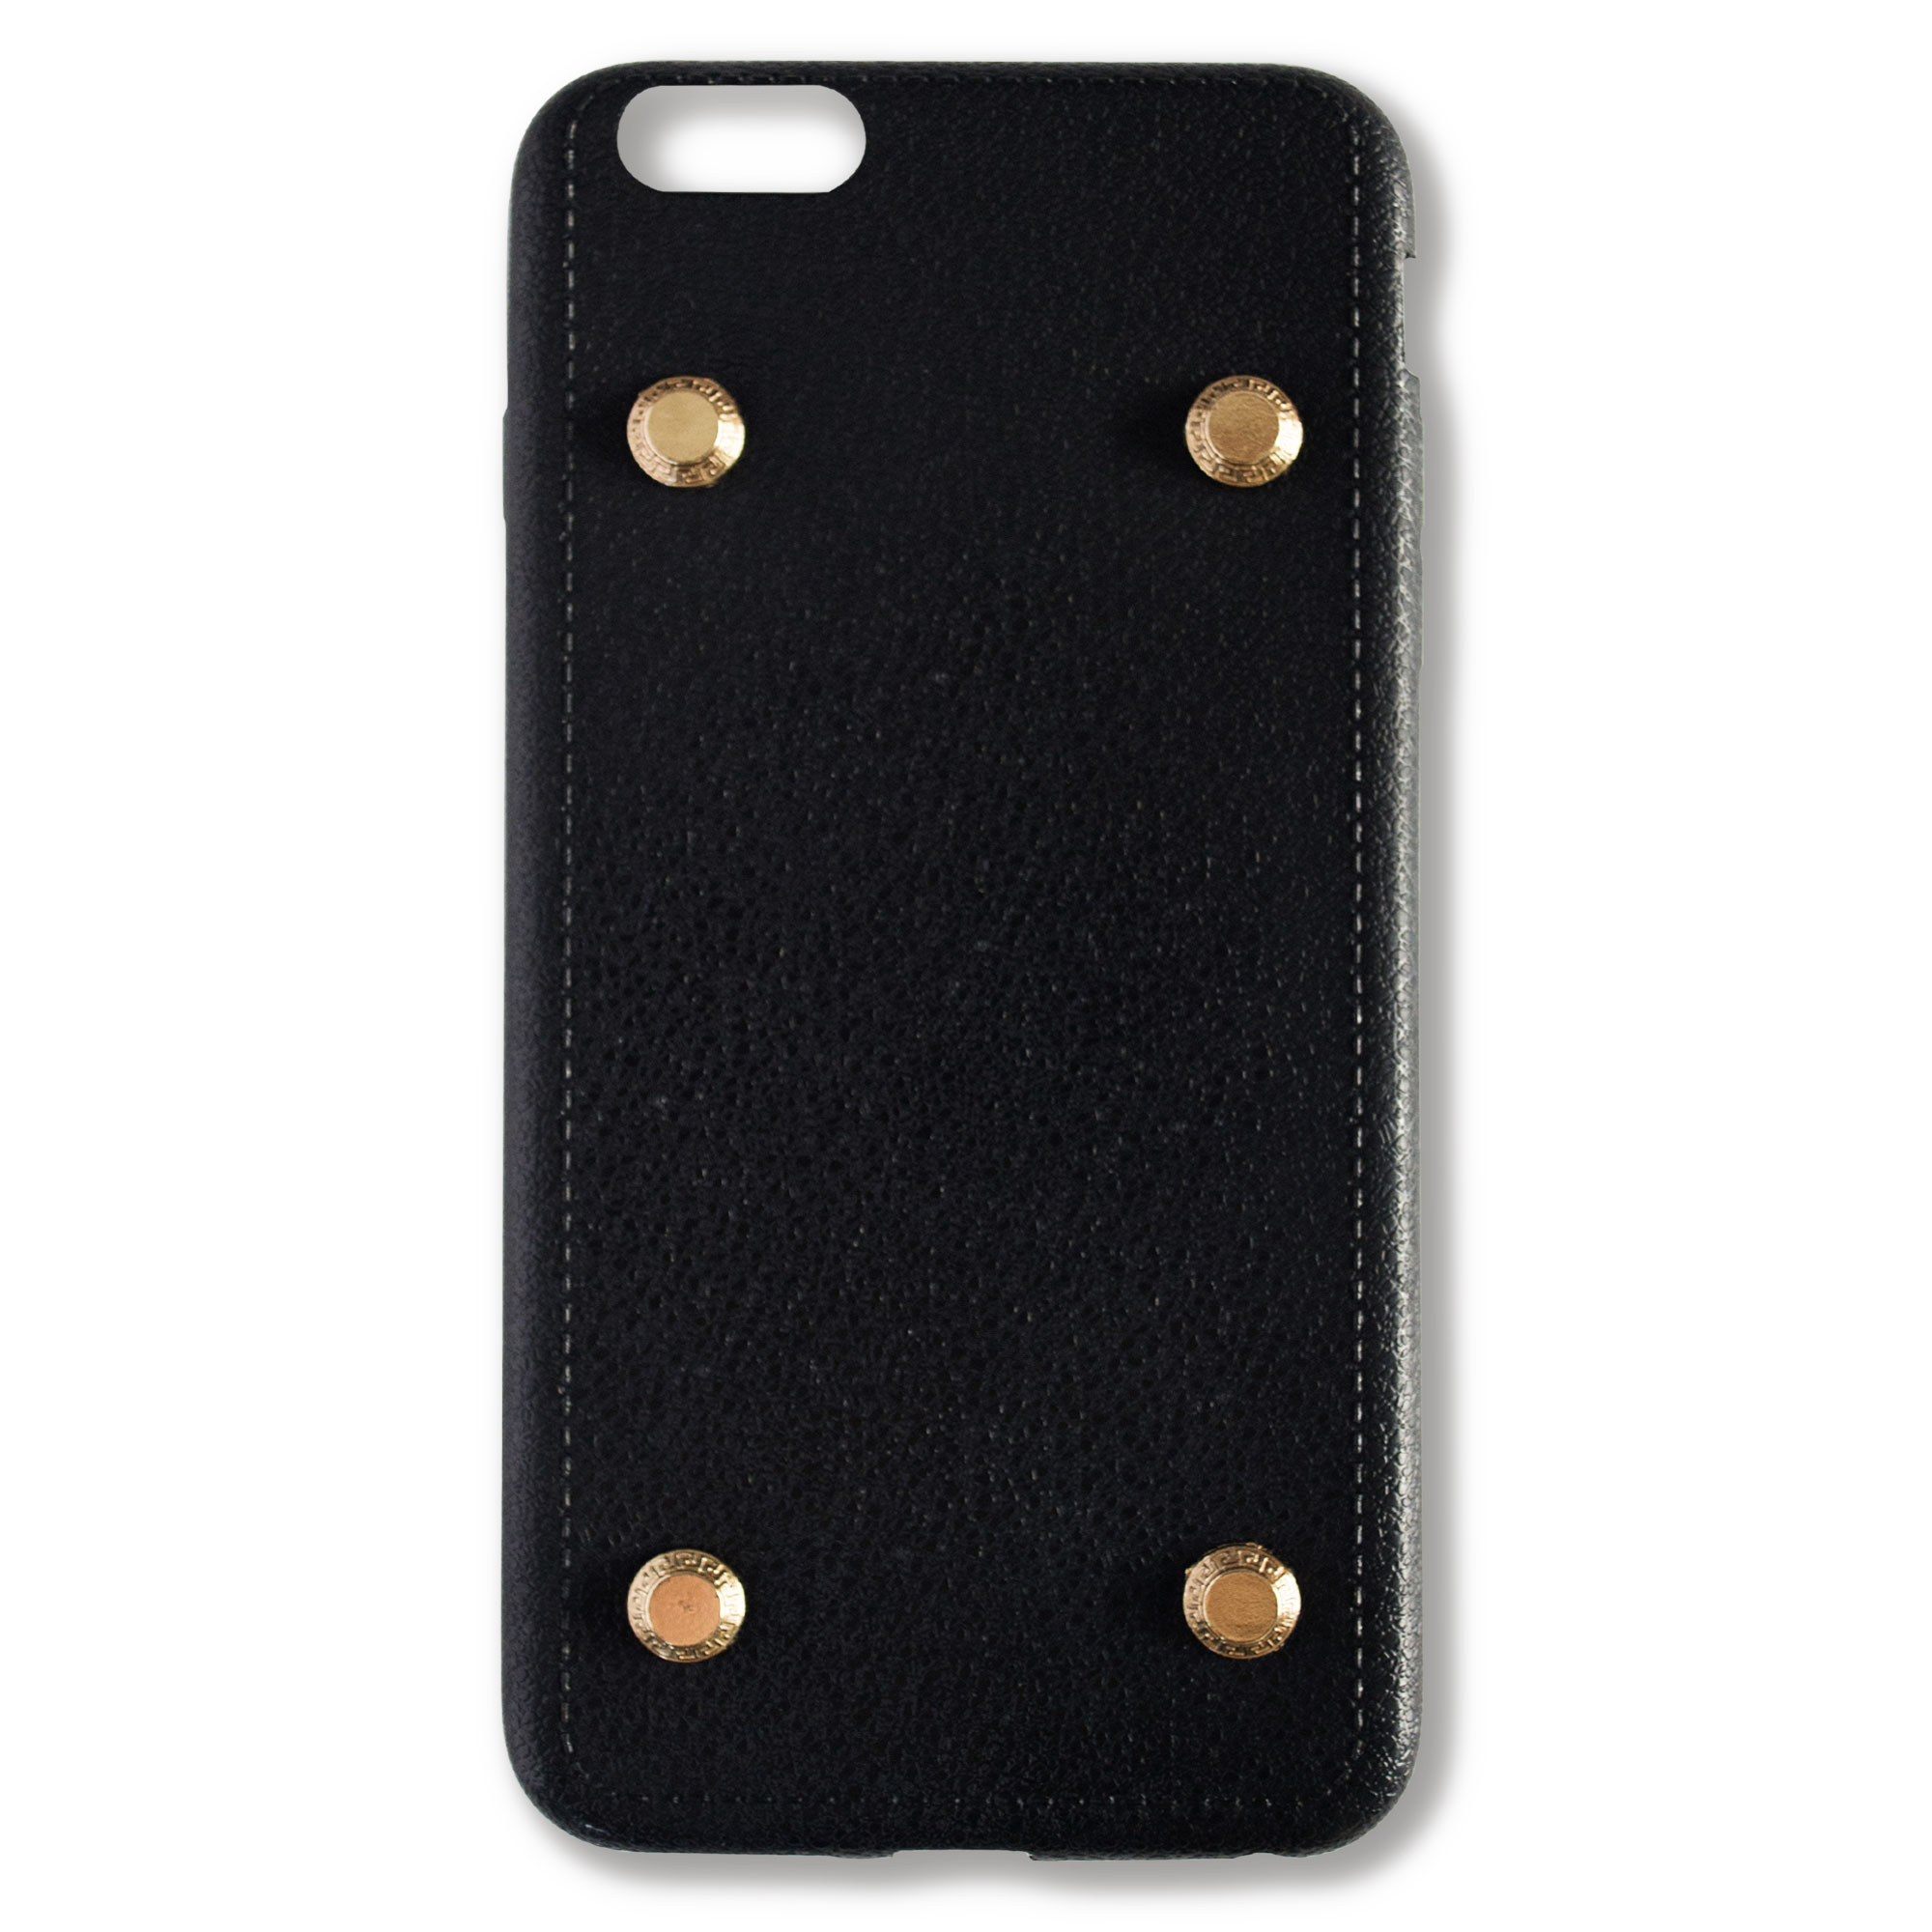 Far East Case with Gold Studs - Black Soft Case